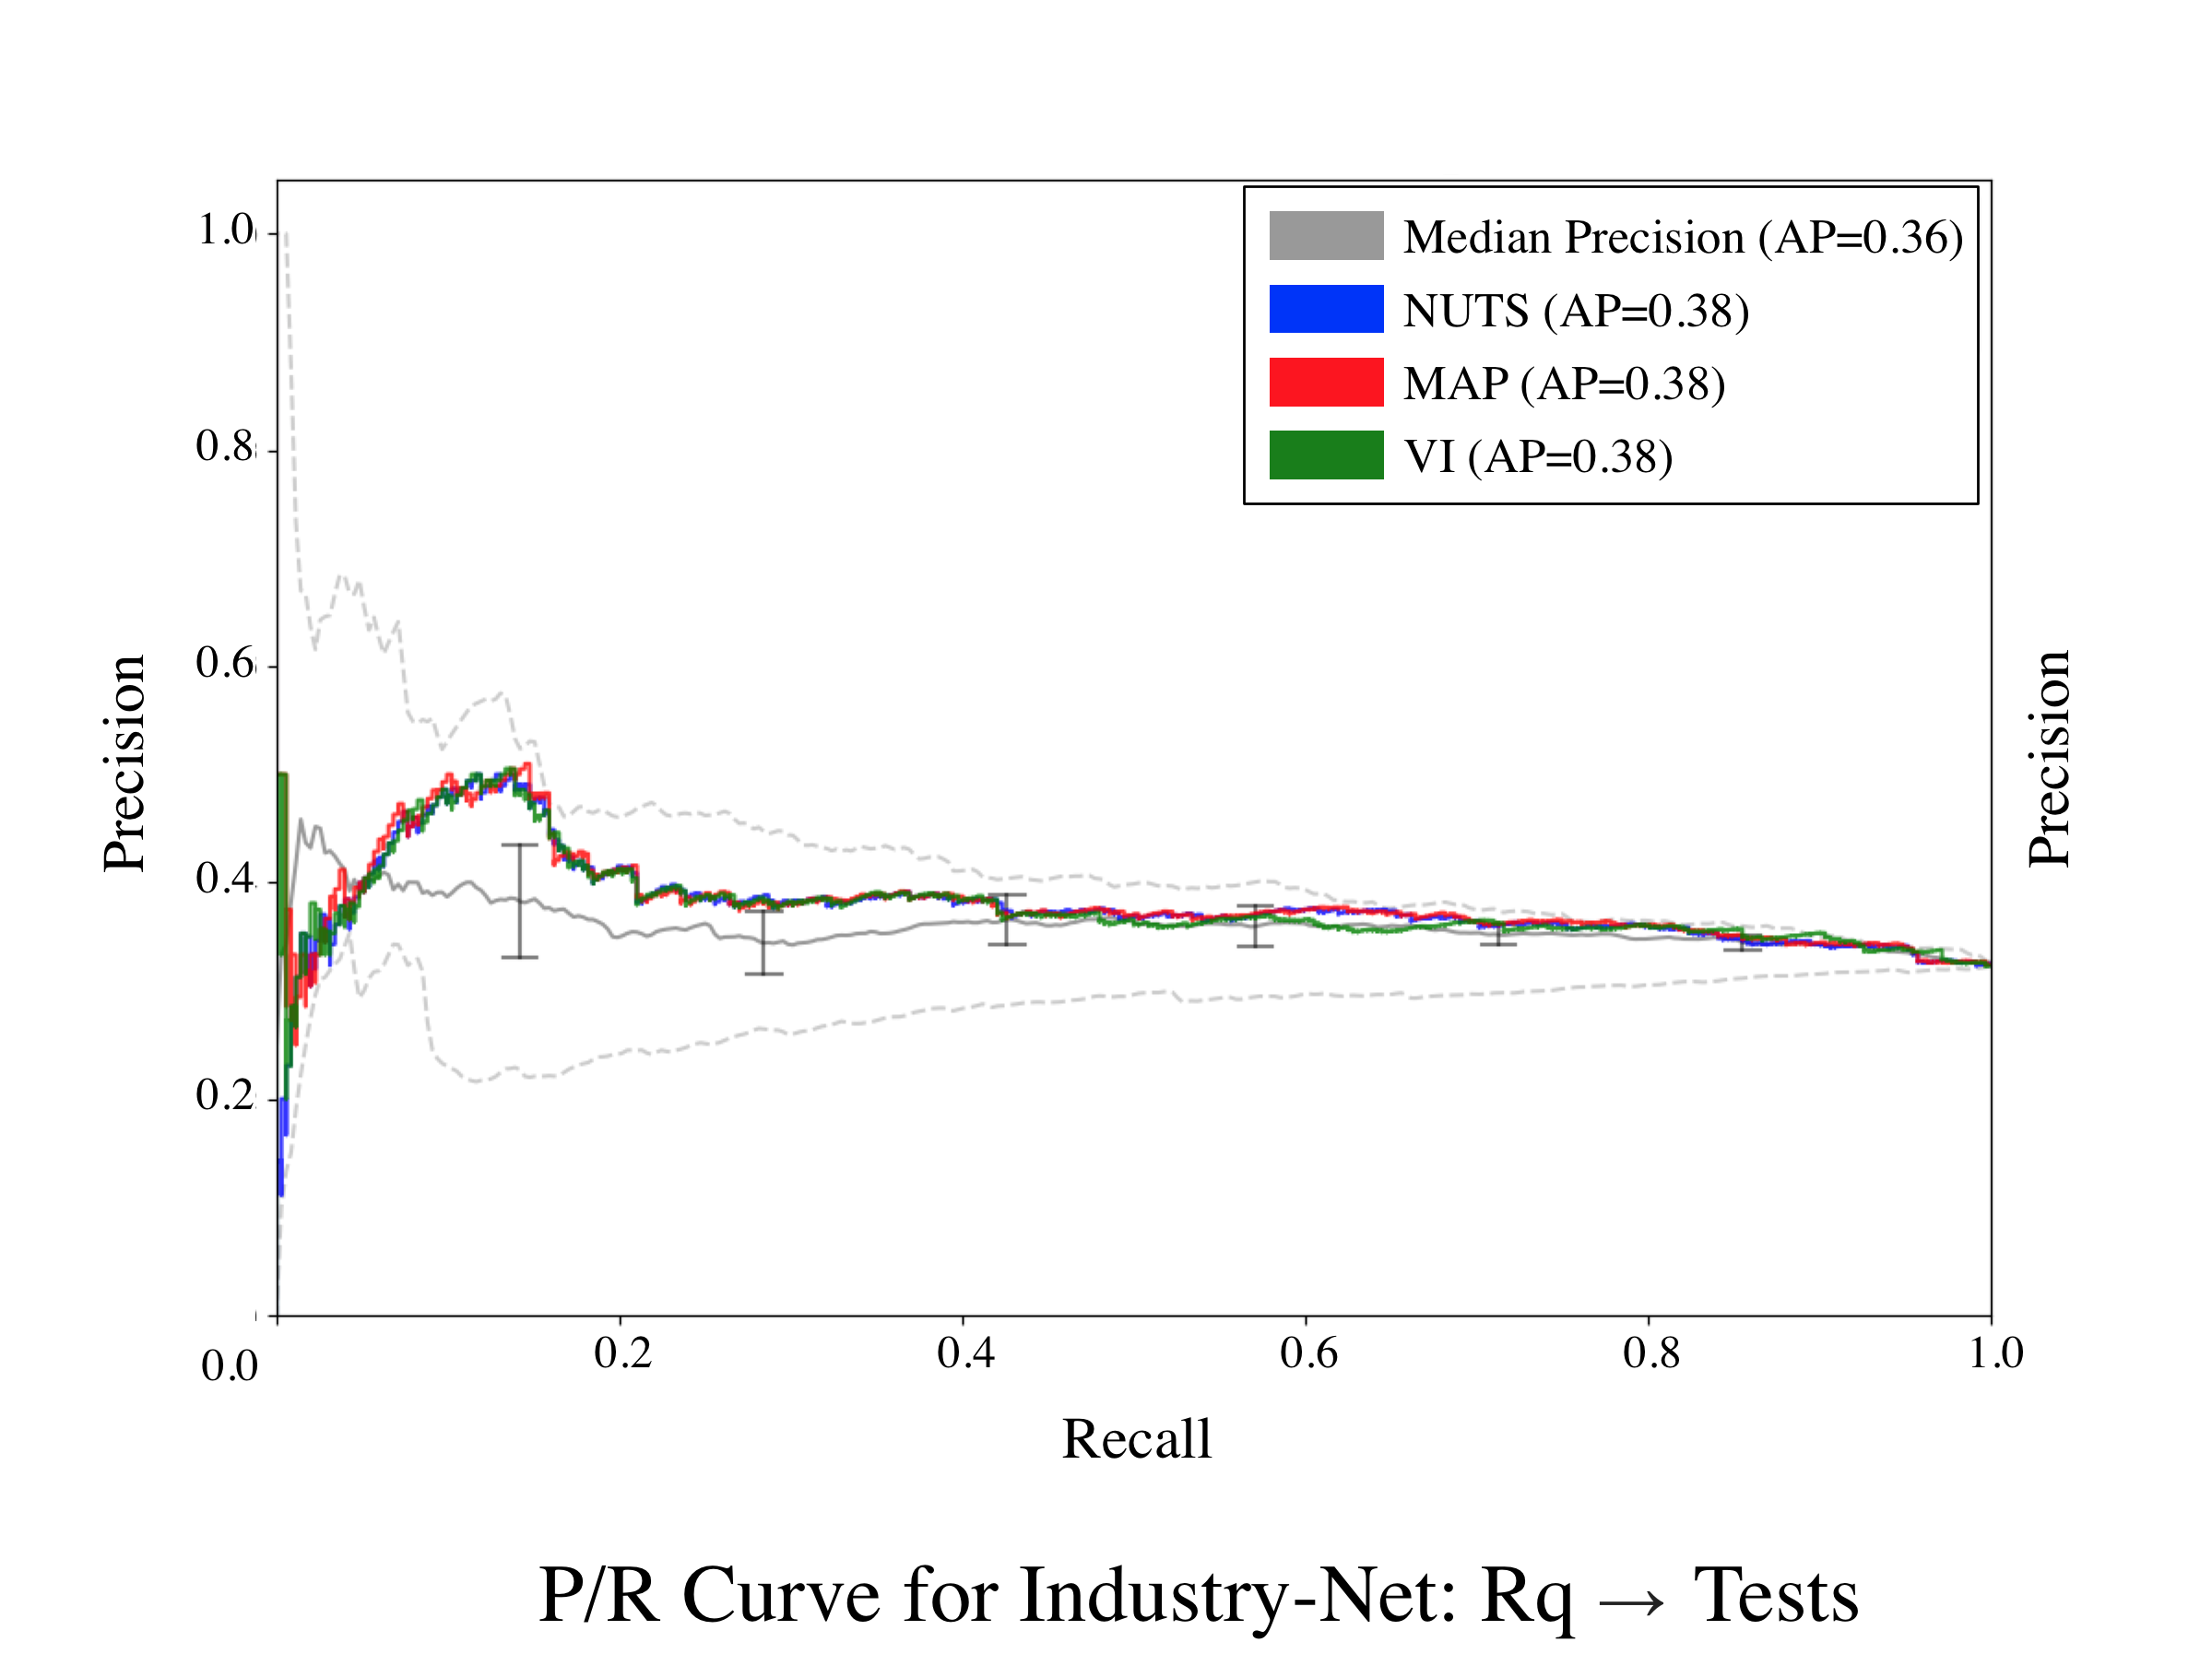 Industry-Net-Req-Tests.png